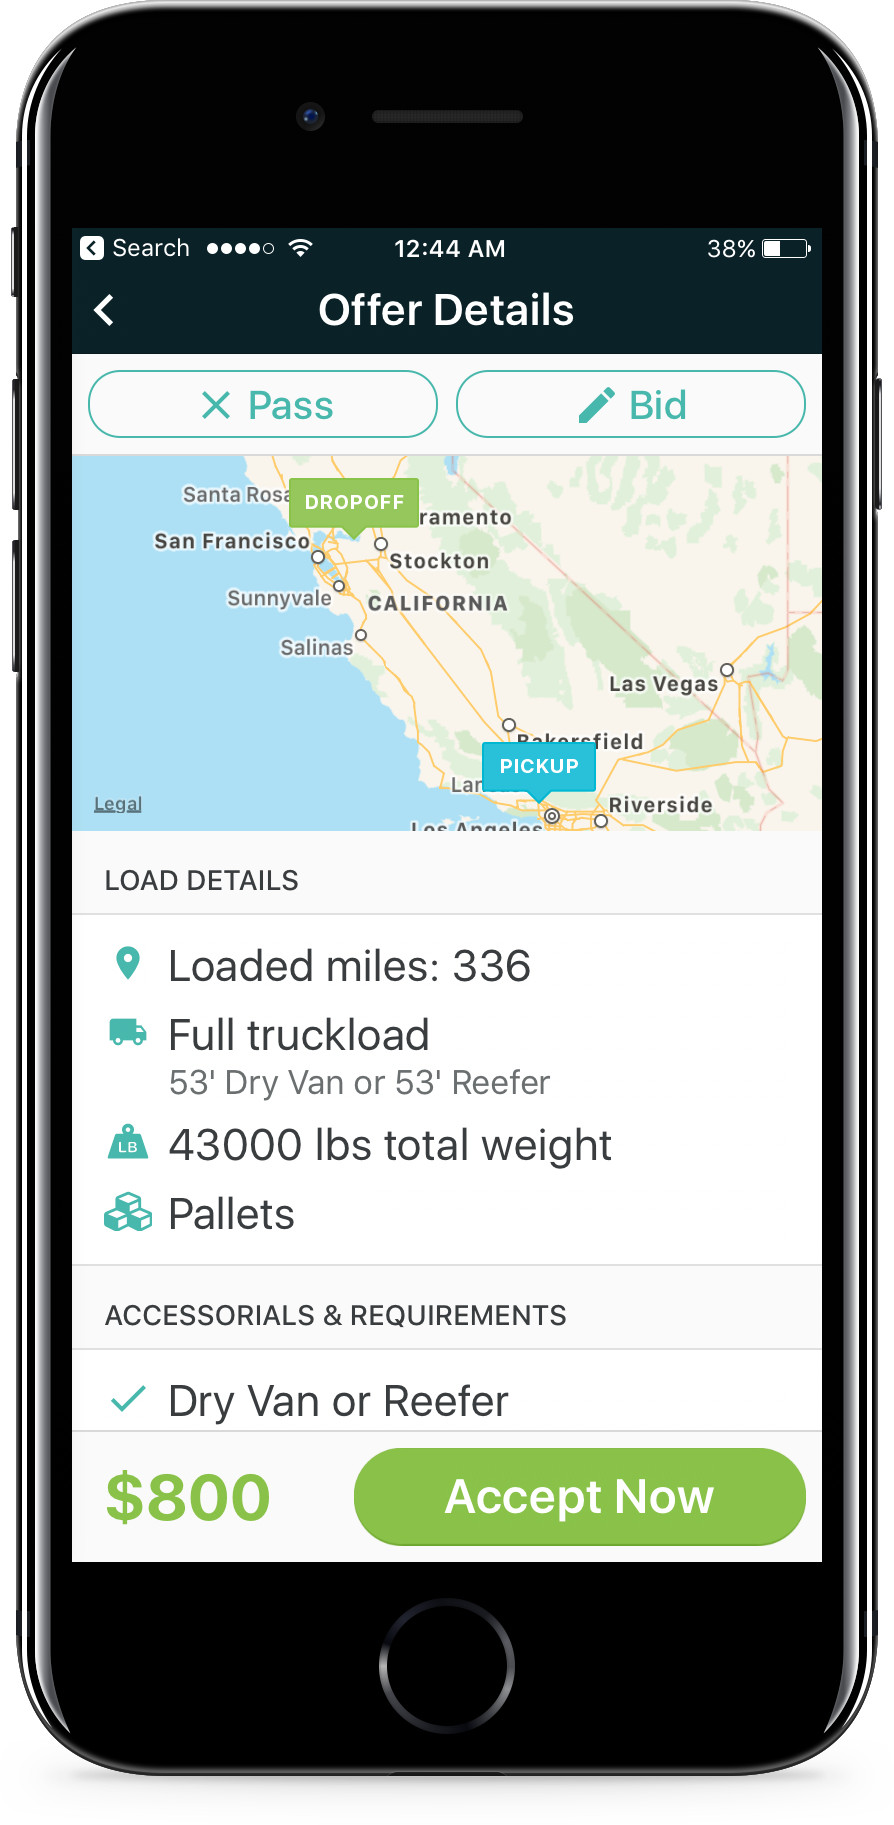 The Convoy app features all the details any trucker needs to ensure they are getting a quality-paying load and can deliver it successfully.